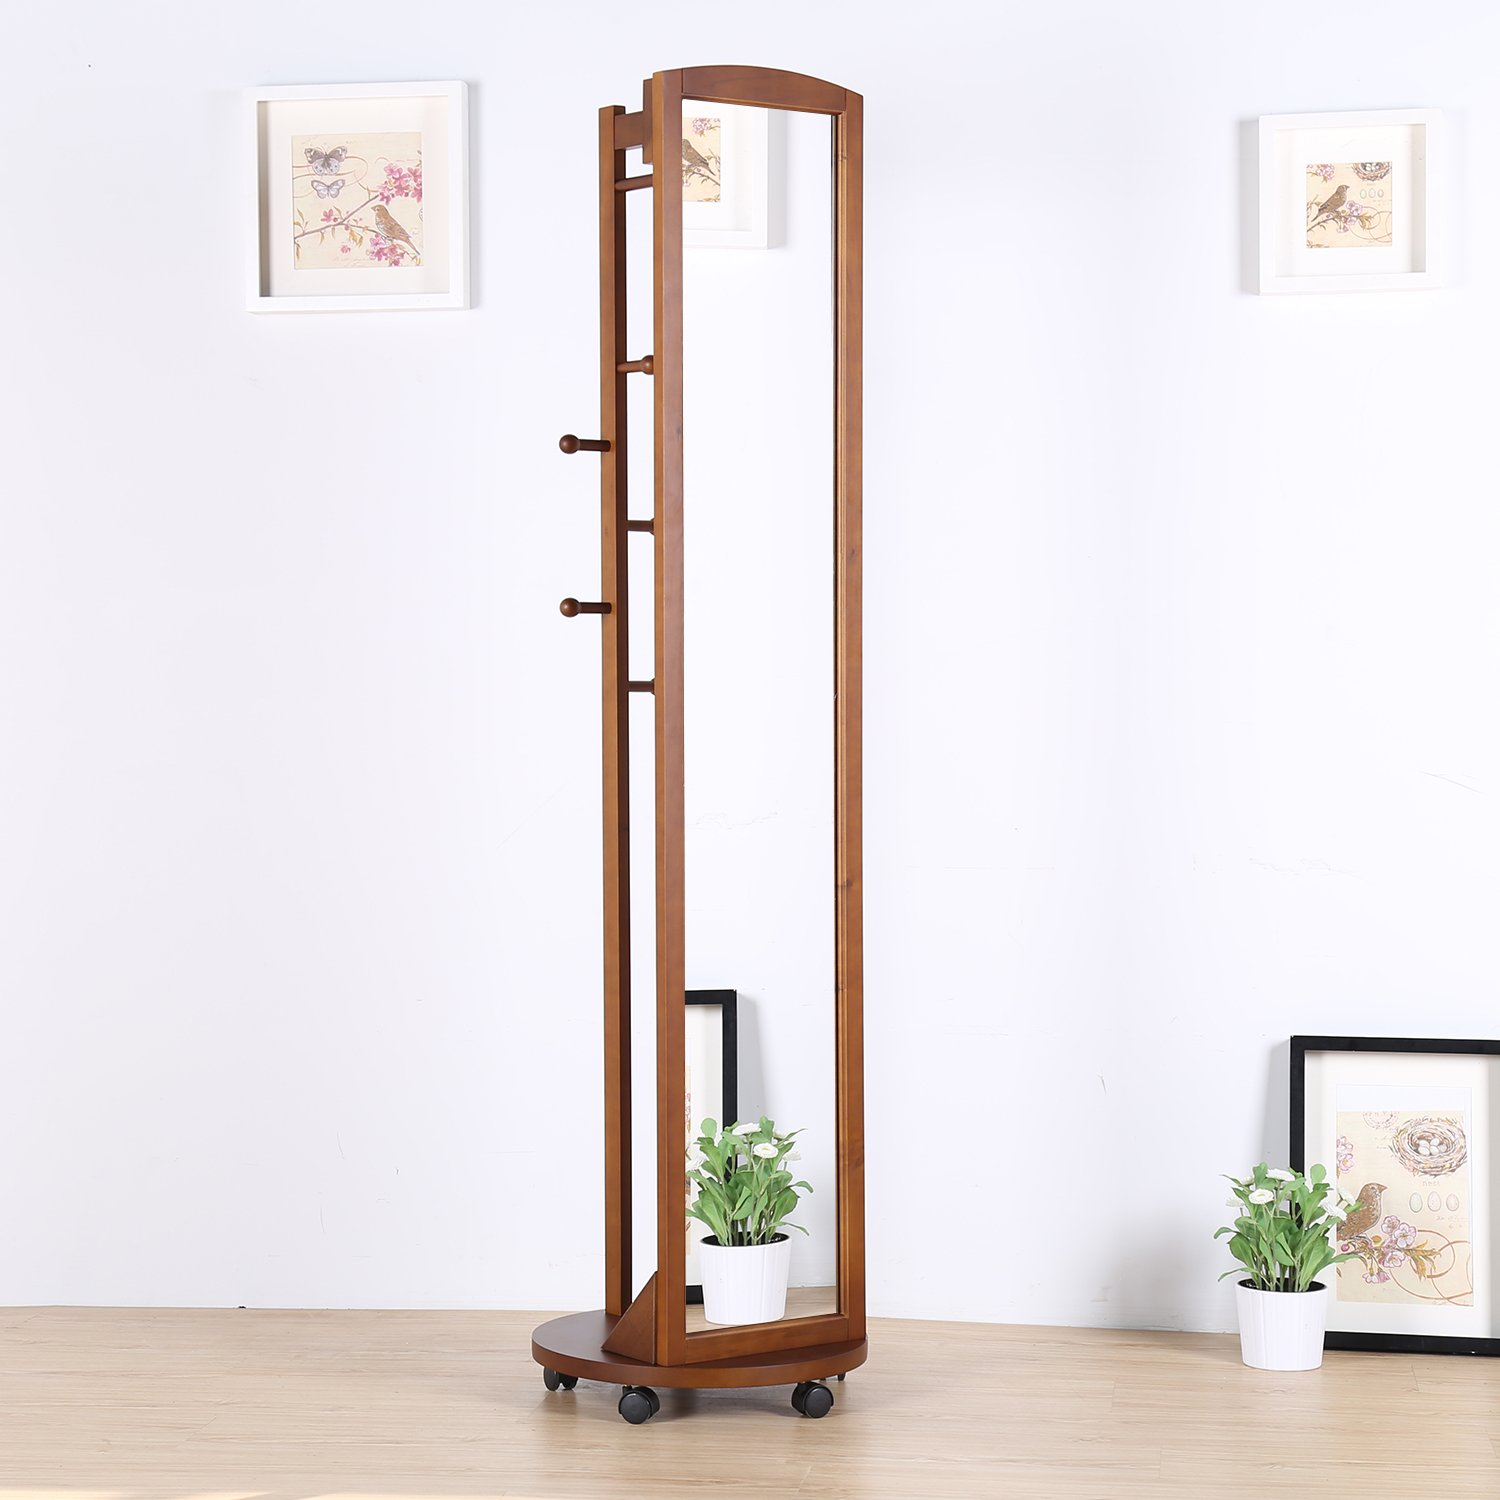 Tiny Times Multifunctional 360 Swivel Wooden Frame 69 Tall Full Length Mirror Dressing Mirror Body Mirror Floor Mirror with Hanging Bar,Coat Stand,Coat Hooks-Brown